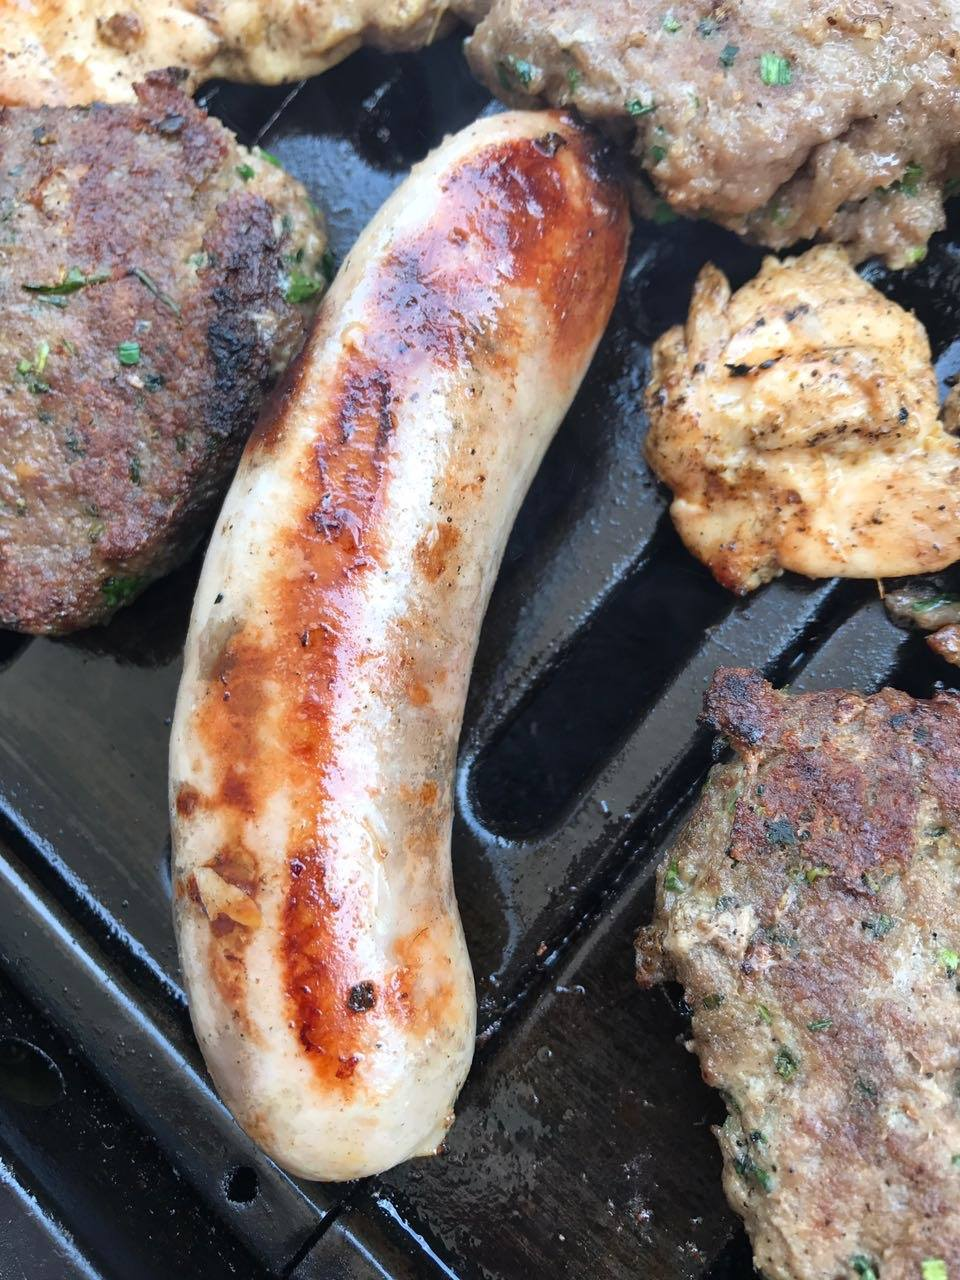 Summer barbecues in Germany mean lot of smoked meat, cold salad, German wurst and beer